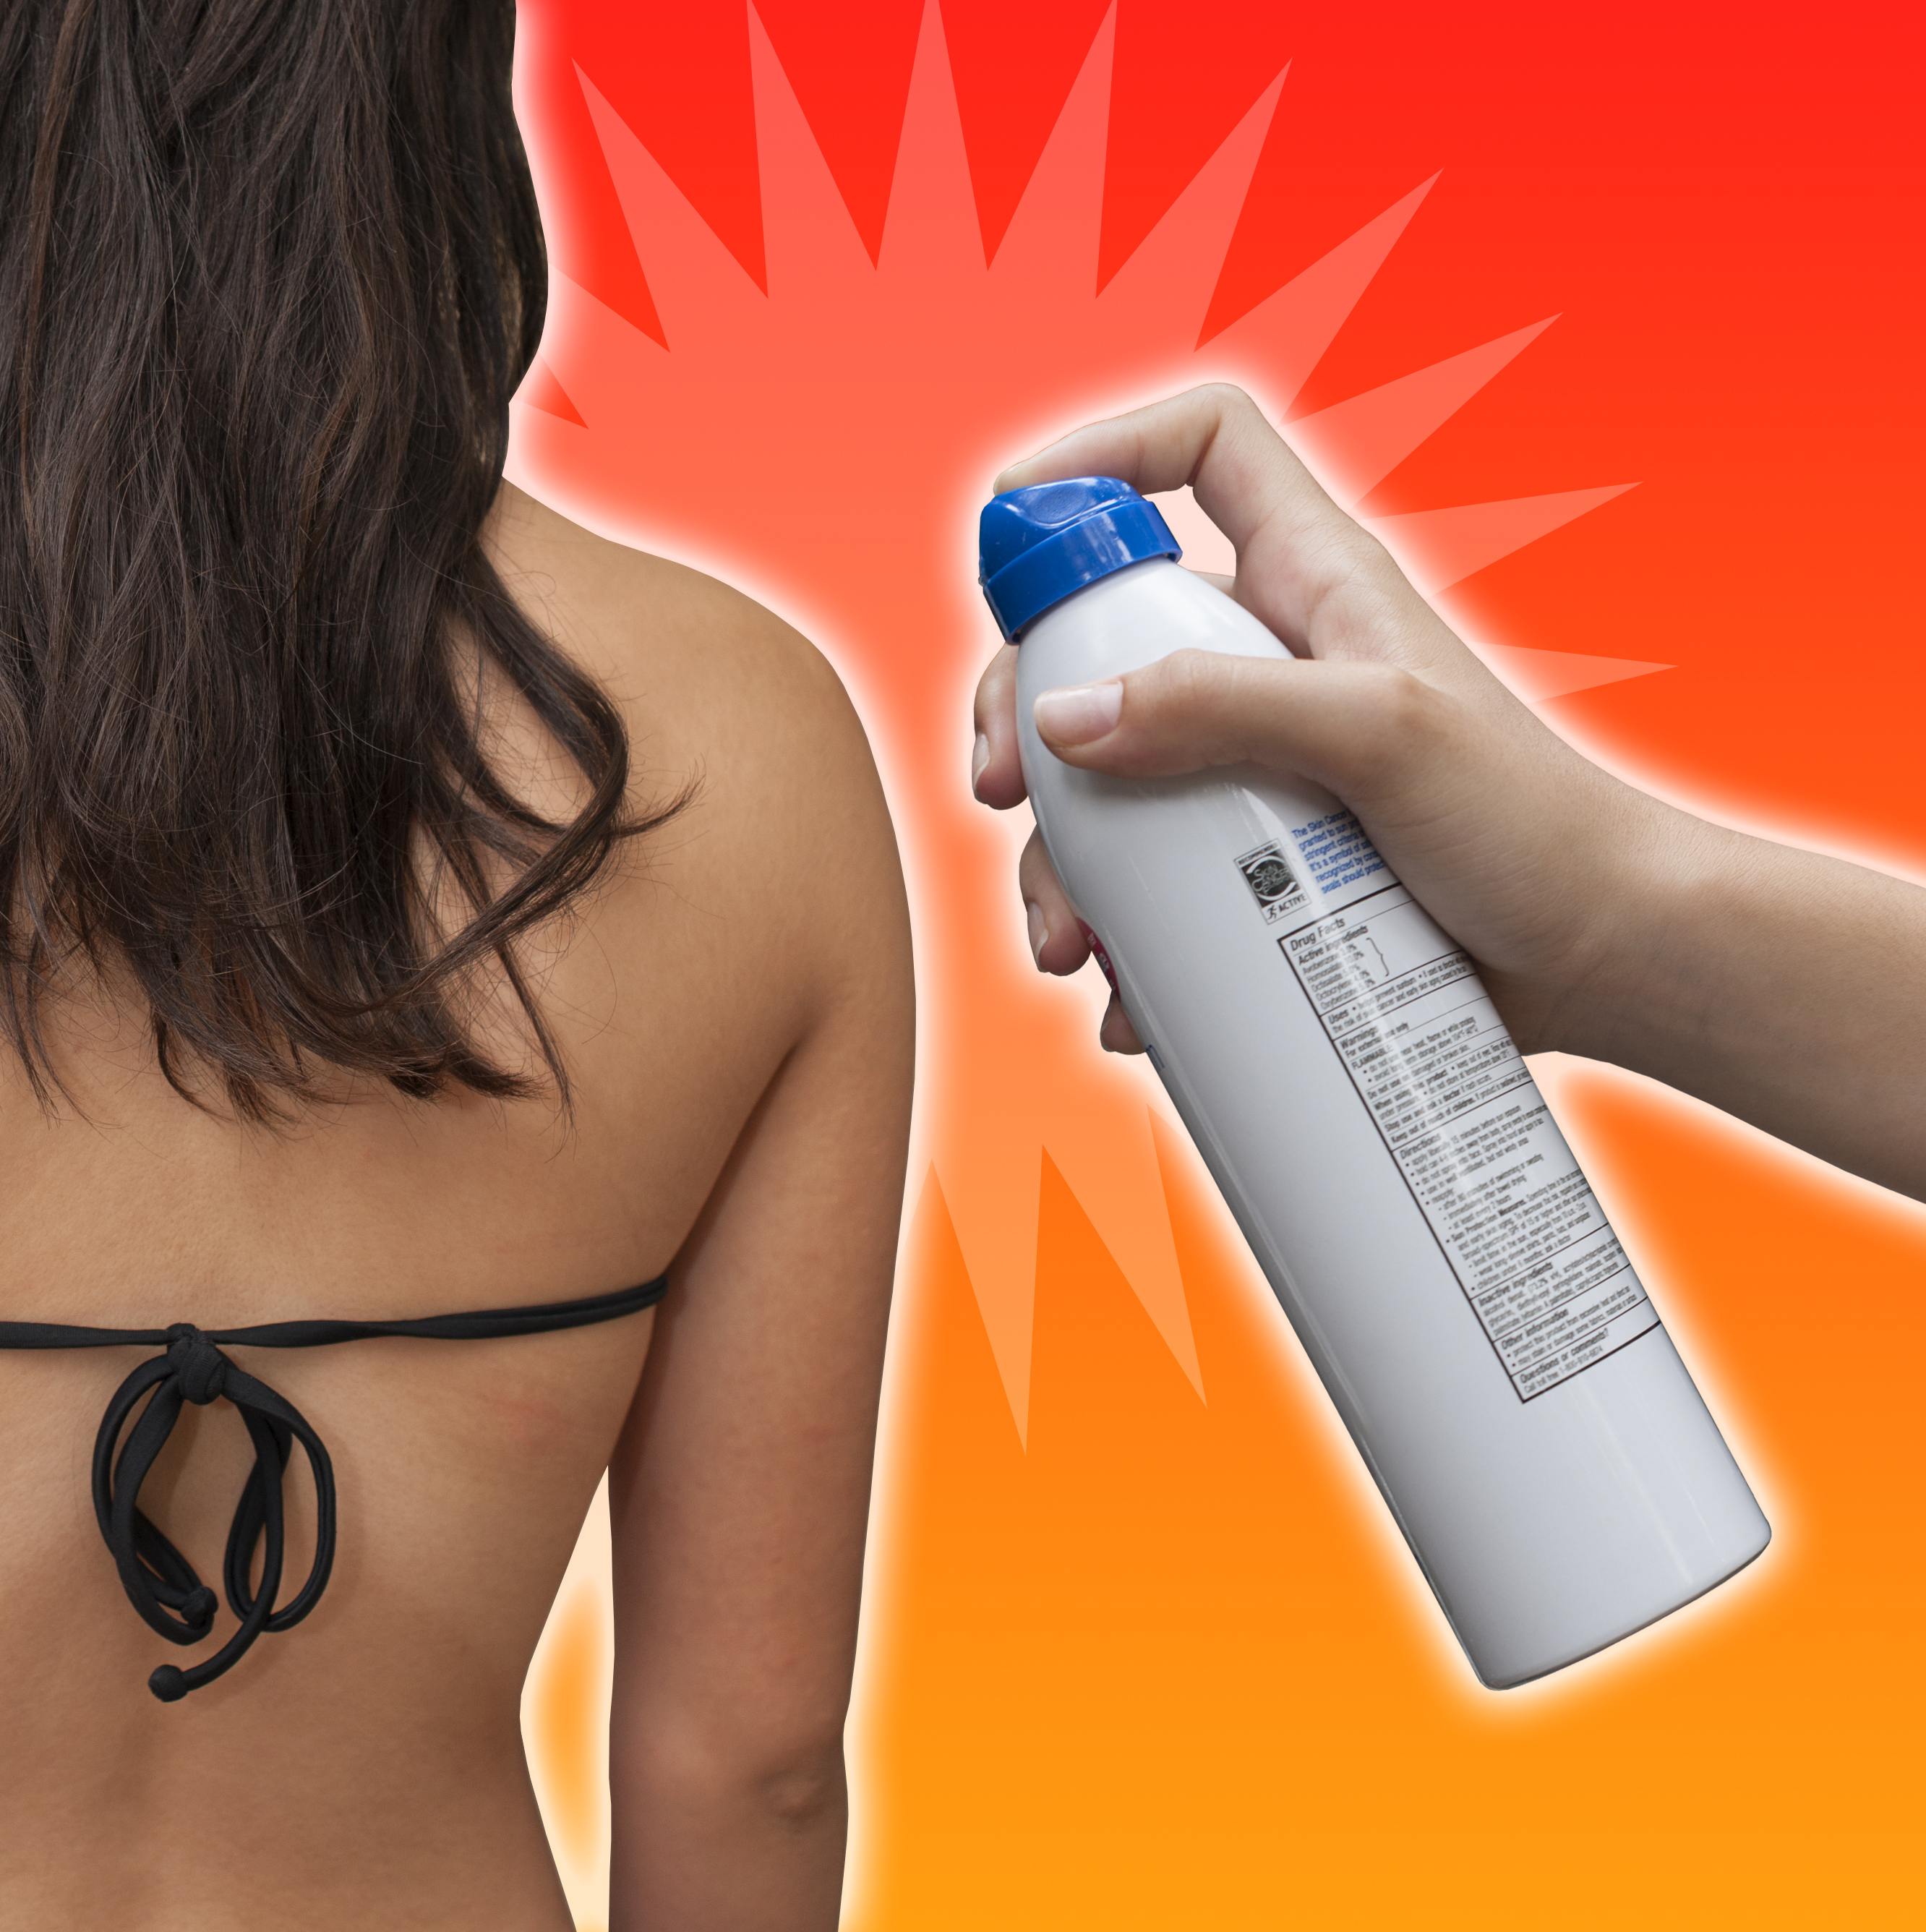 Use_Sunscreen_Spray?_Avoid_Open_Flame_(9196637400)